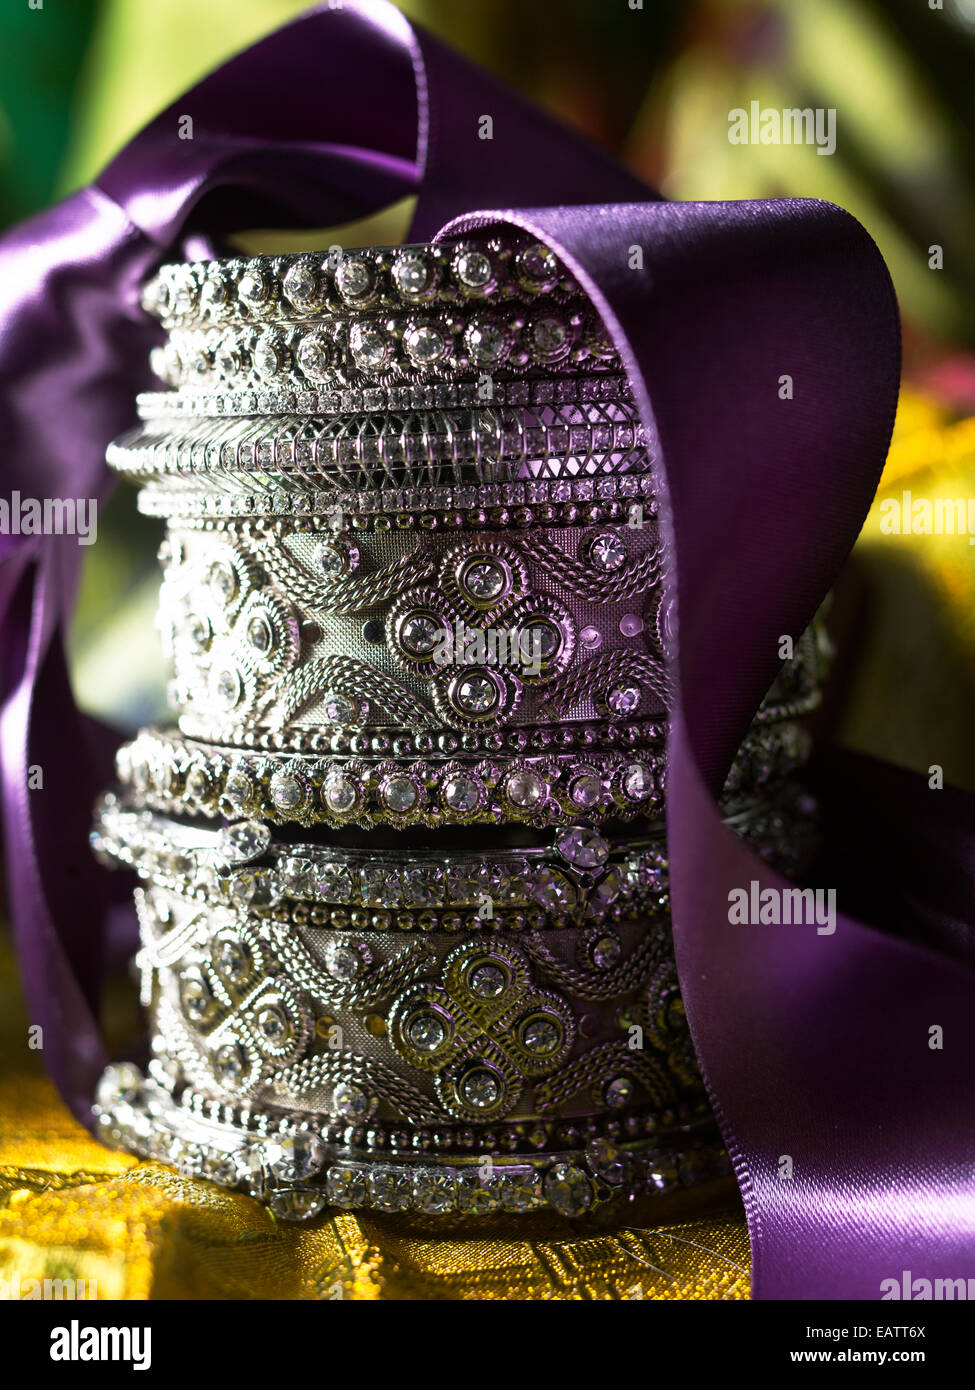 silver ornate bangle bracelets stacked with a decorative purple ribbon on a yellow green background - Stock Image